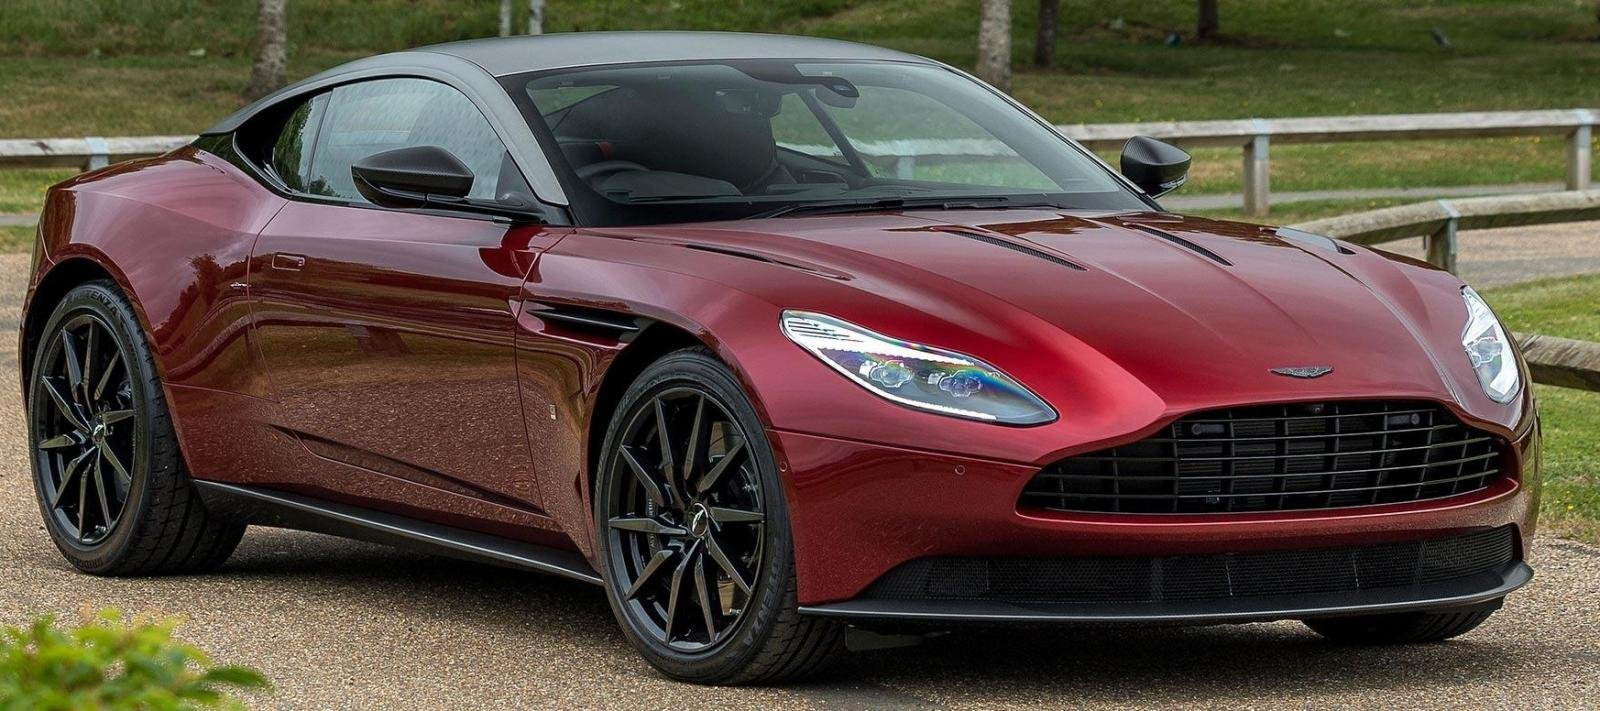 15 Most Expensive Cars in India - Aston Martin DB11